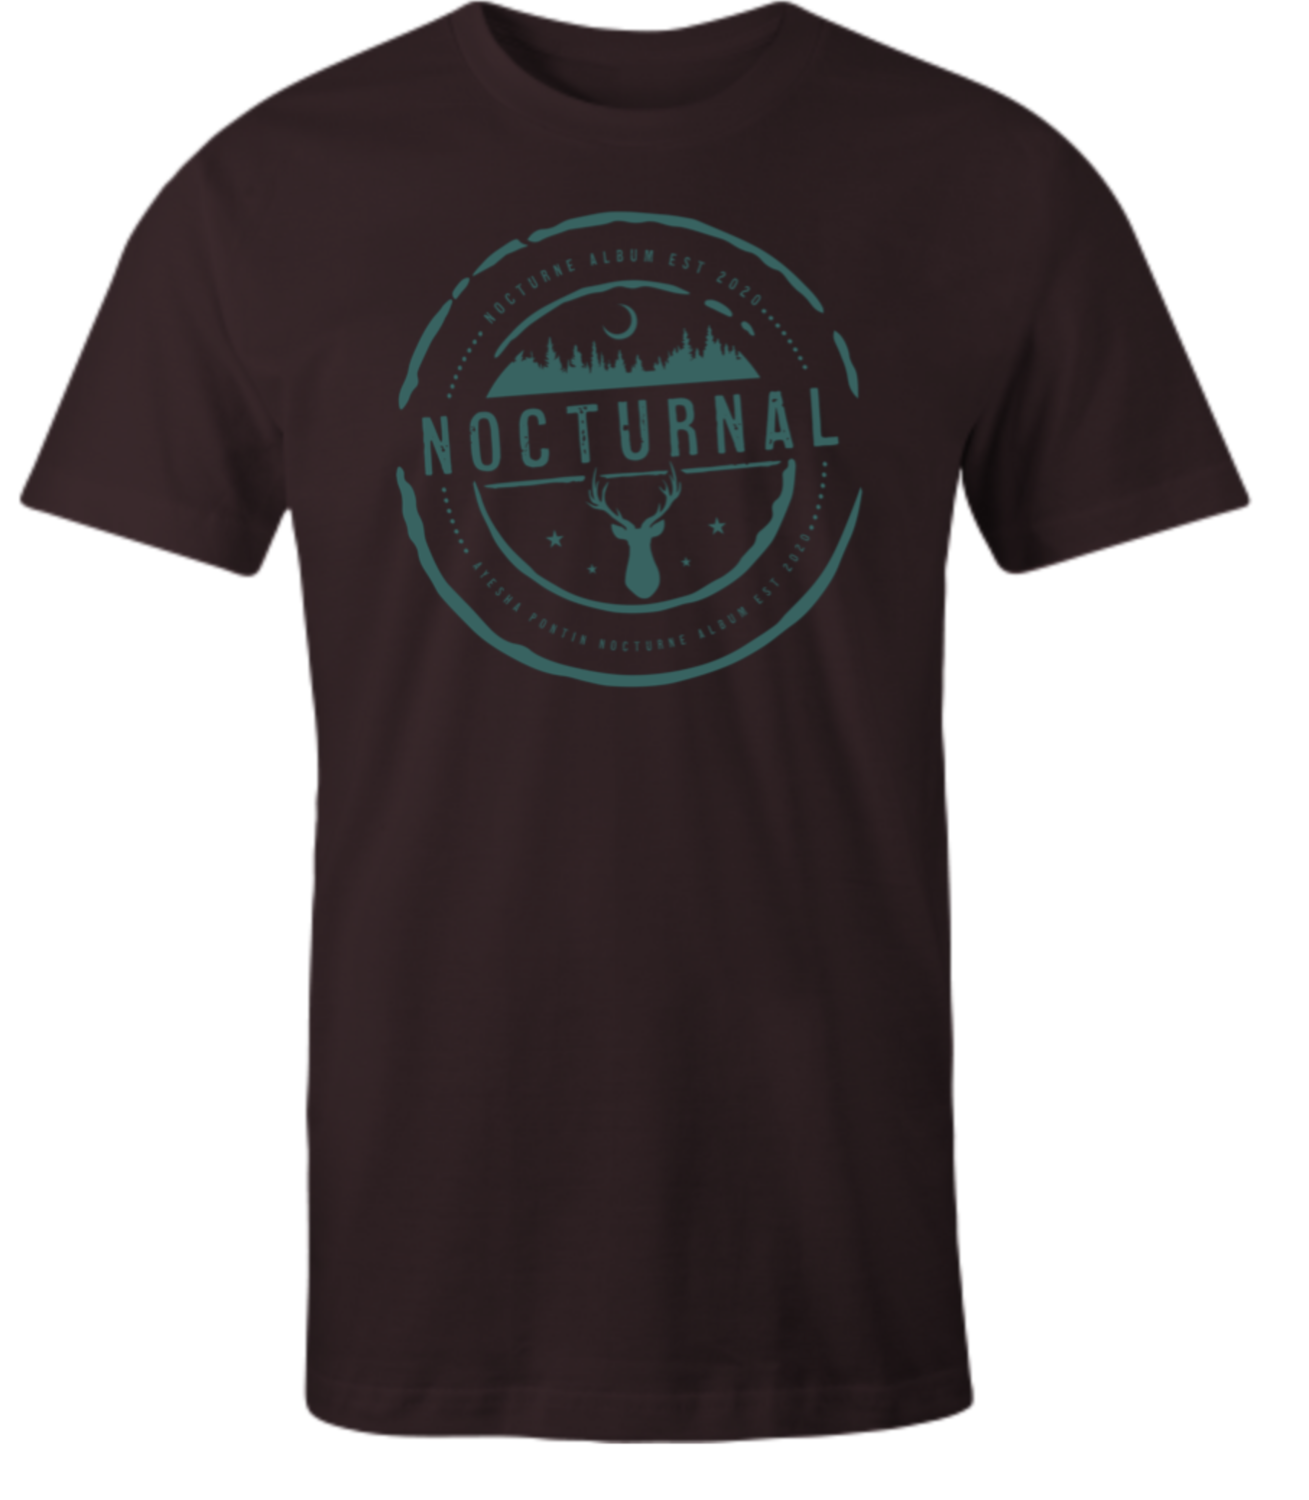 NOCTURNE Album Official Merch: Mens Soft Style Tee Shirt XXL